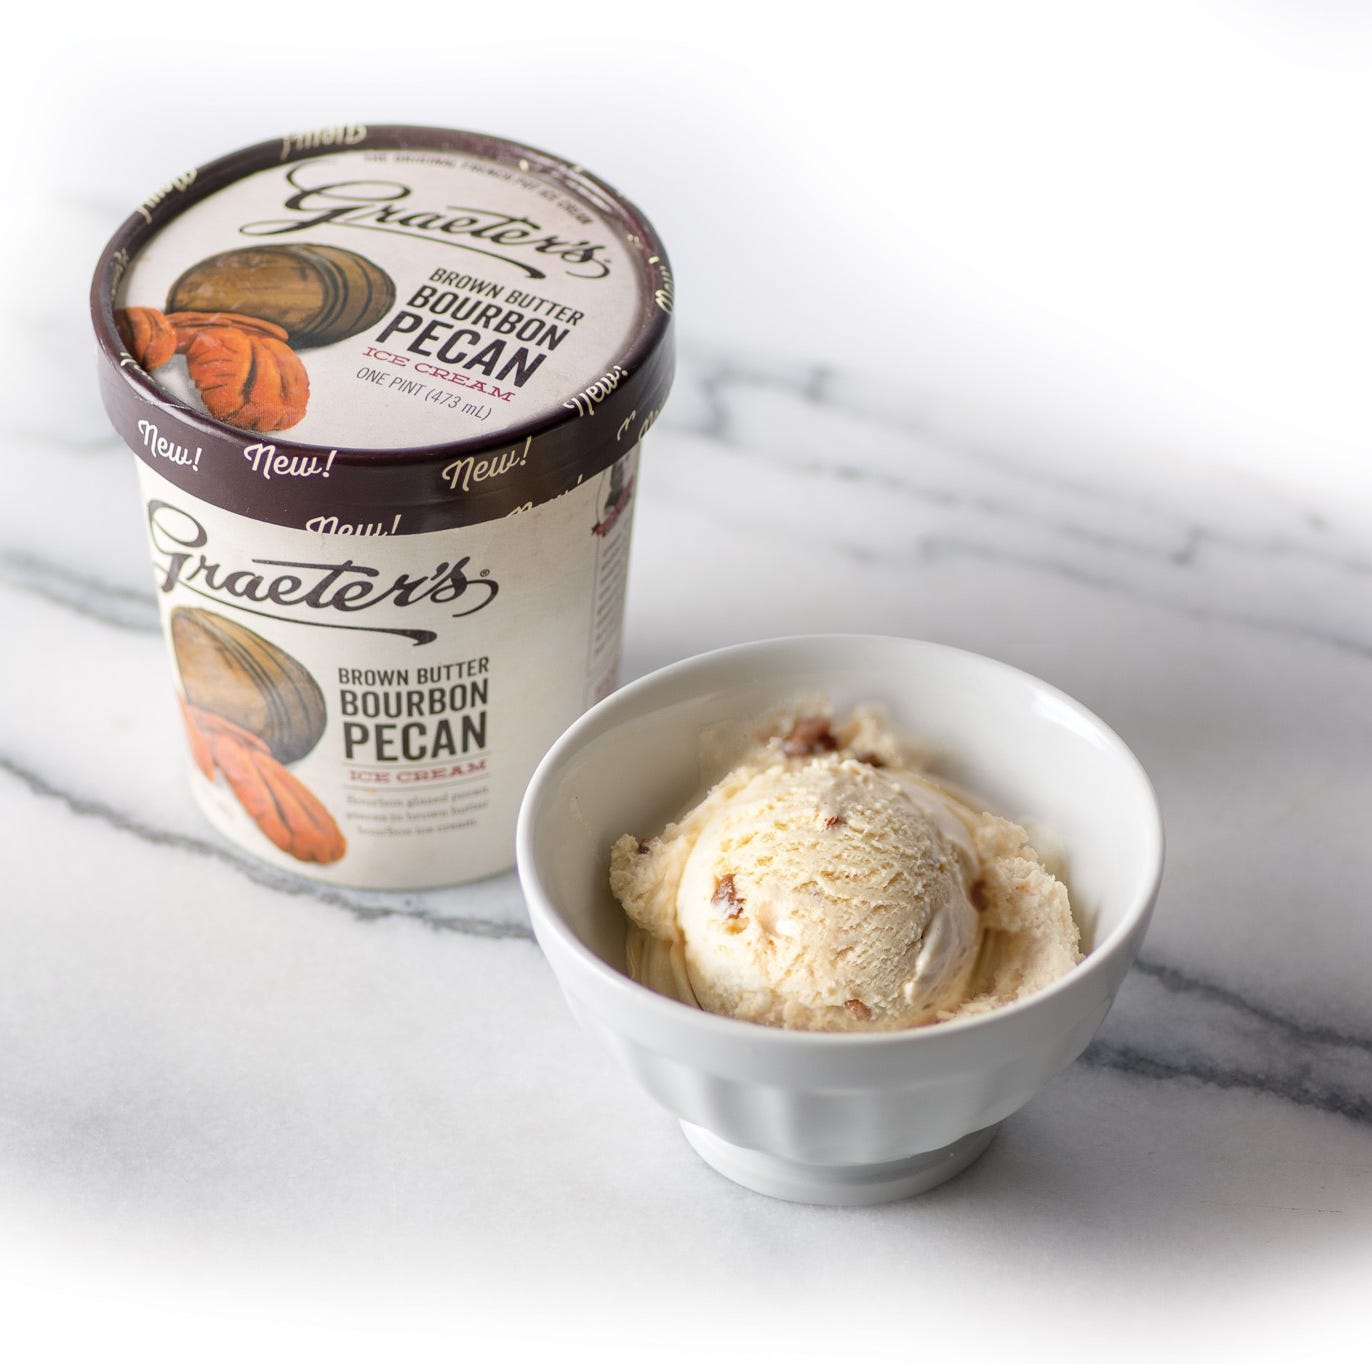 Graeter's releases a Kentucky Derby-inspired flavor. Yes, it involves bourbon